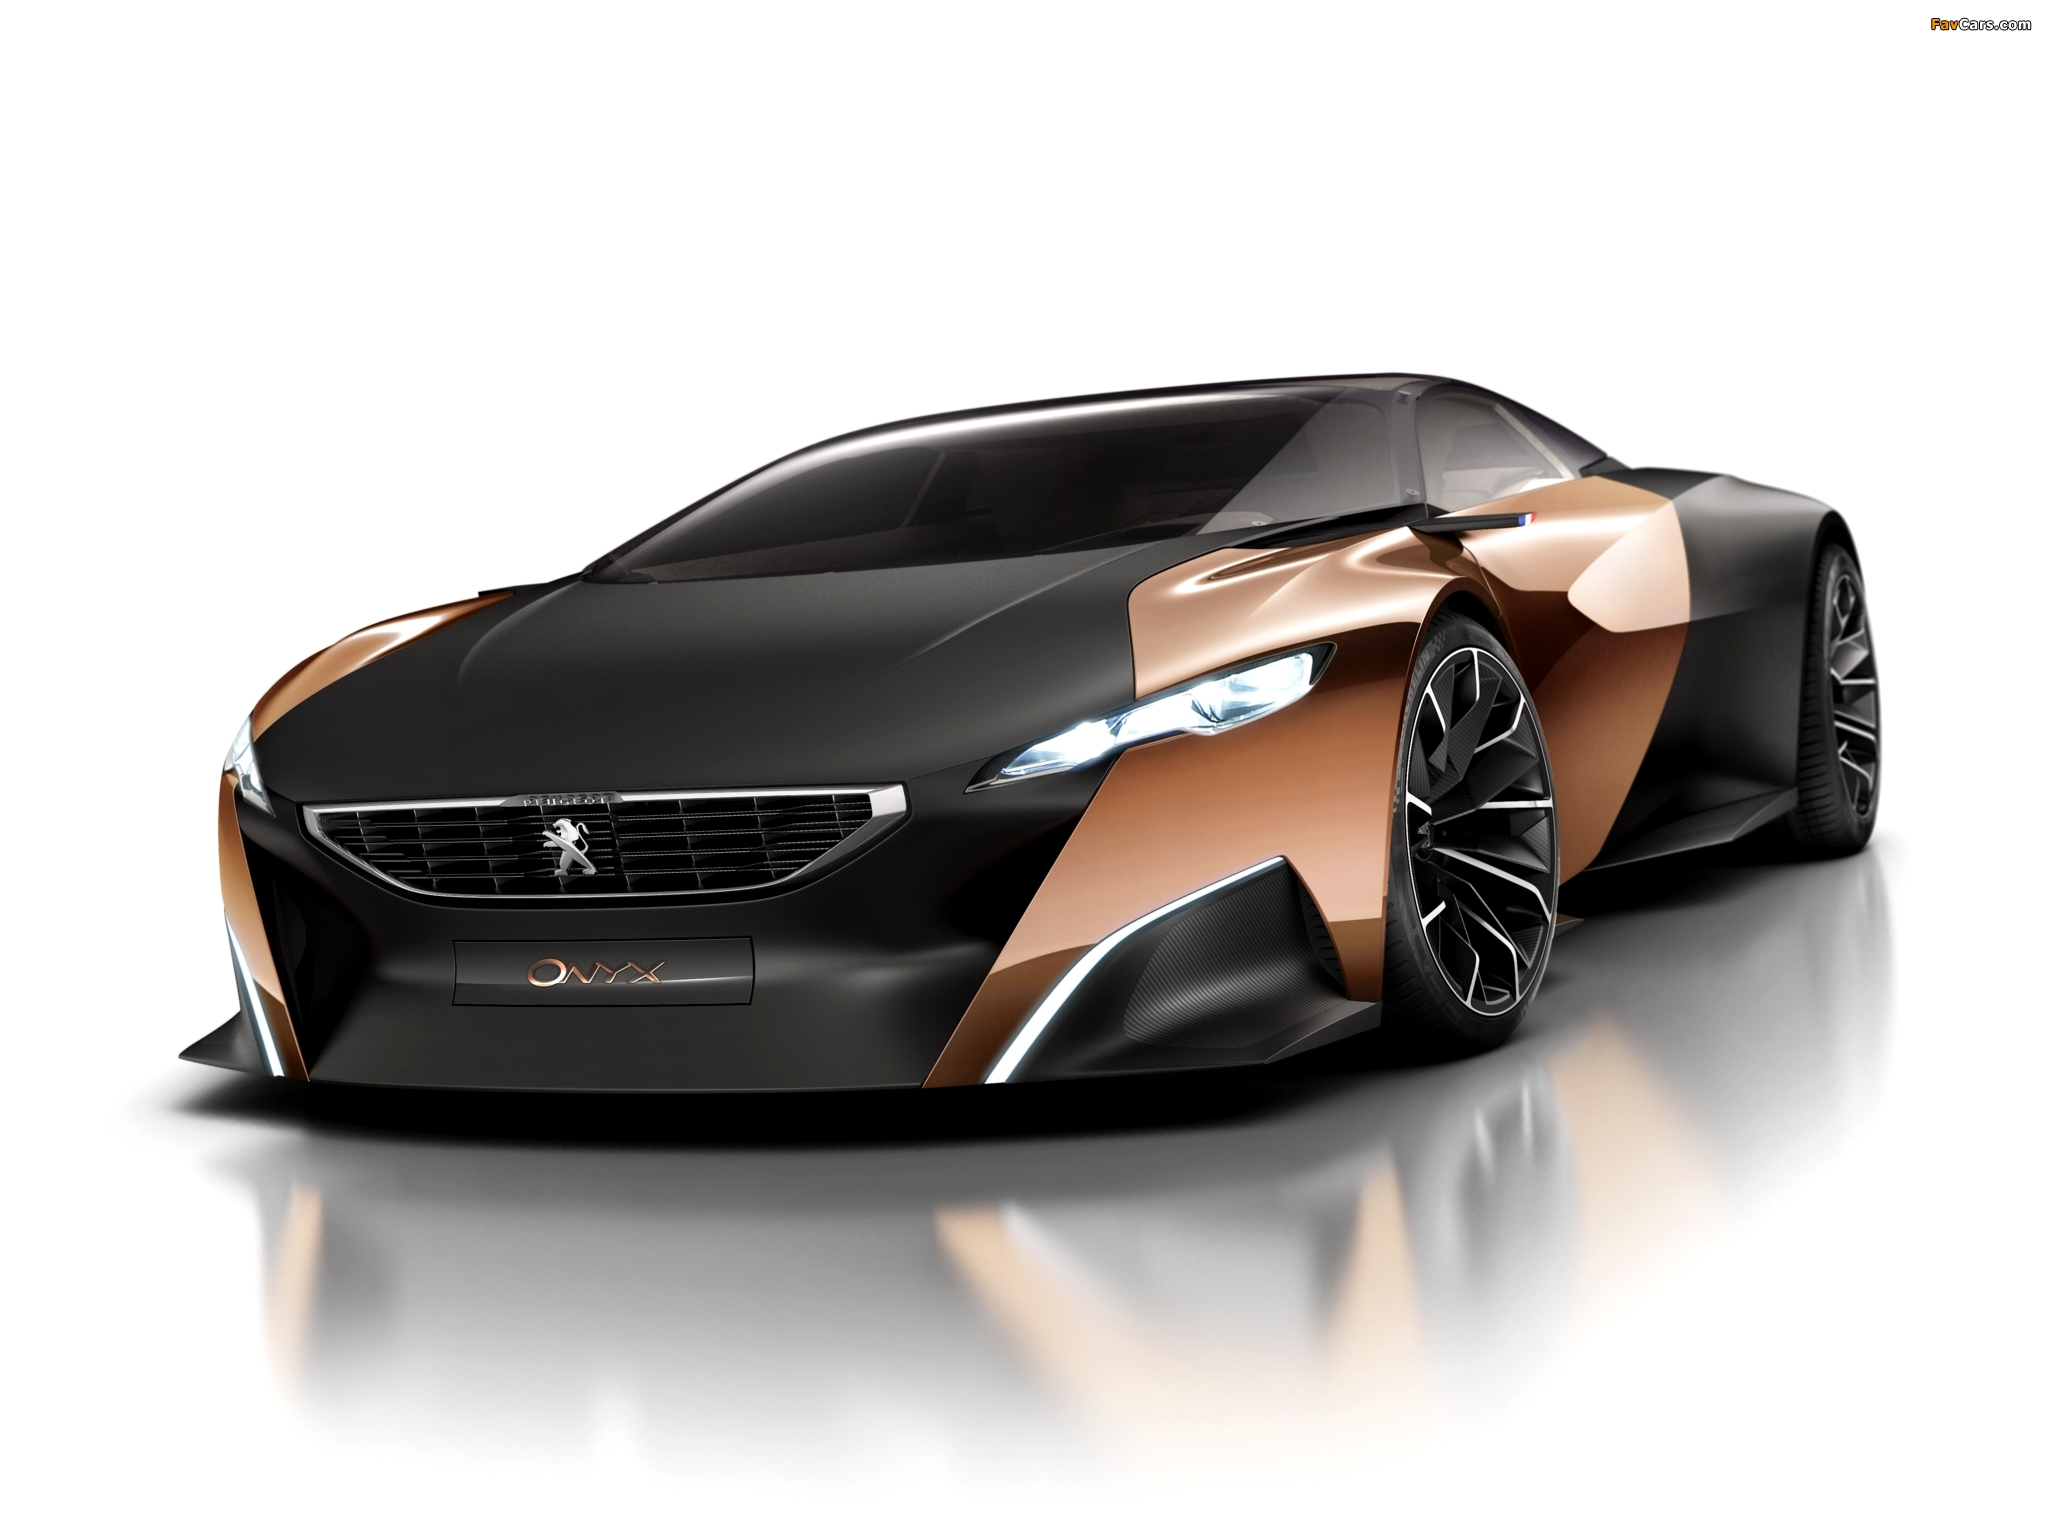 Peugeot Onyx Concept 2012 wallpapers (2048 x 1536)